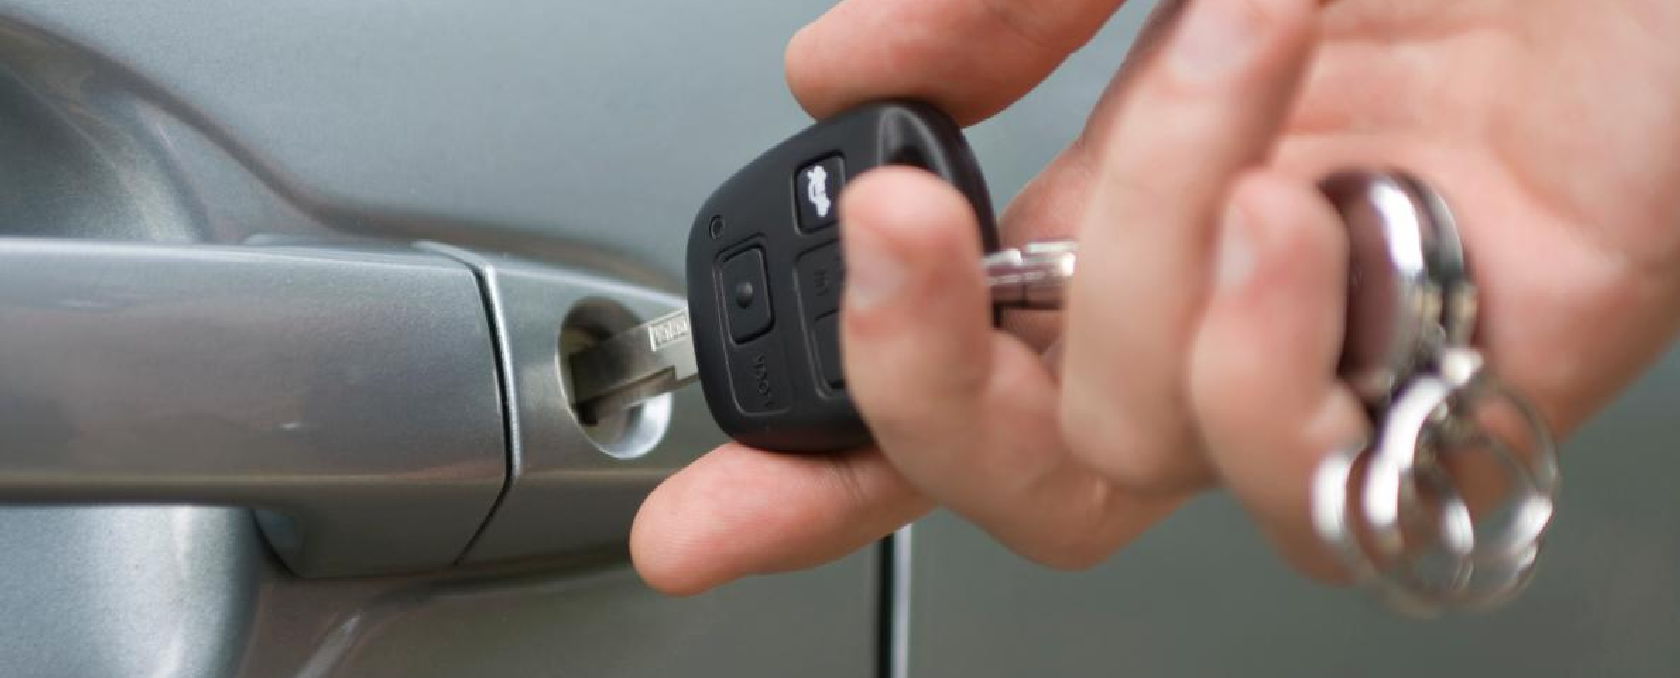 Check Out For Locksmith Aurora Co for Your Security